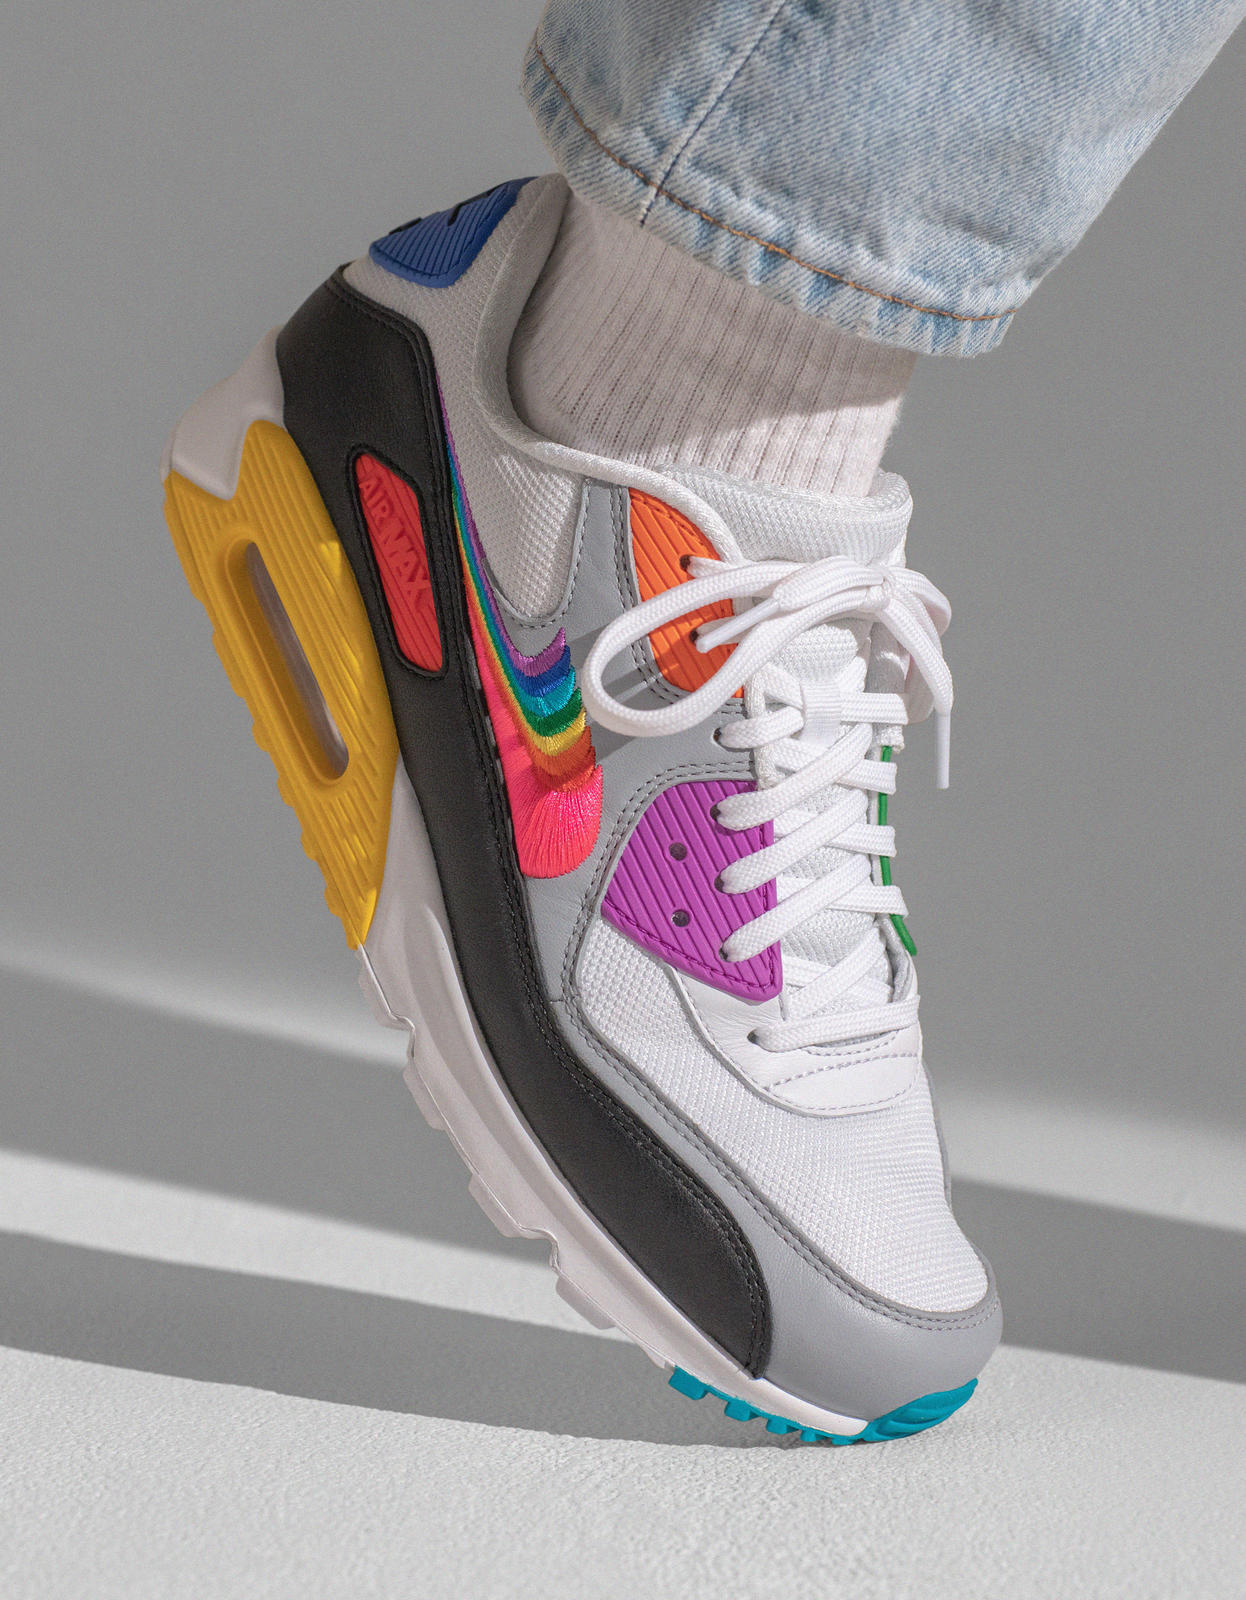 Nike-BETRUE-2019-Collection-18_88117.jpg